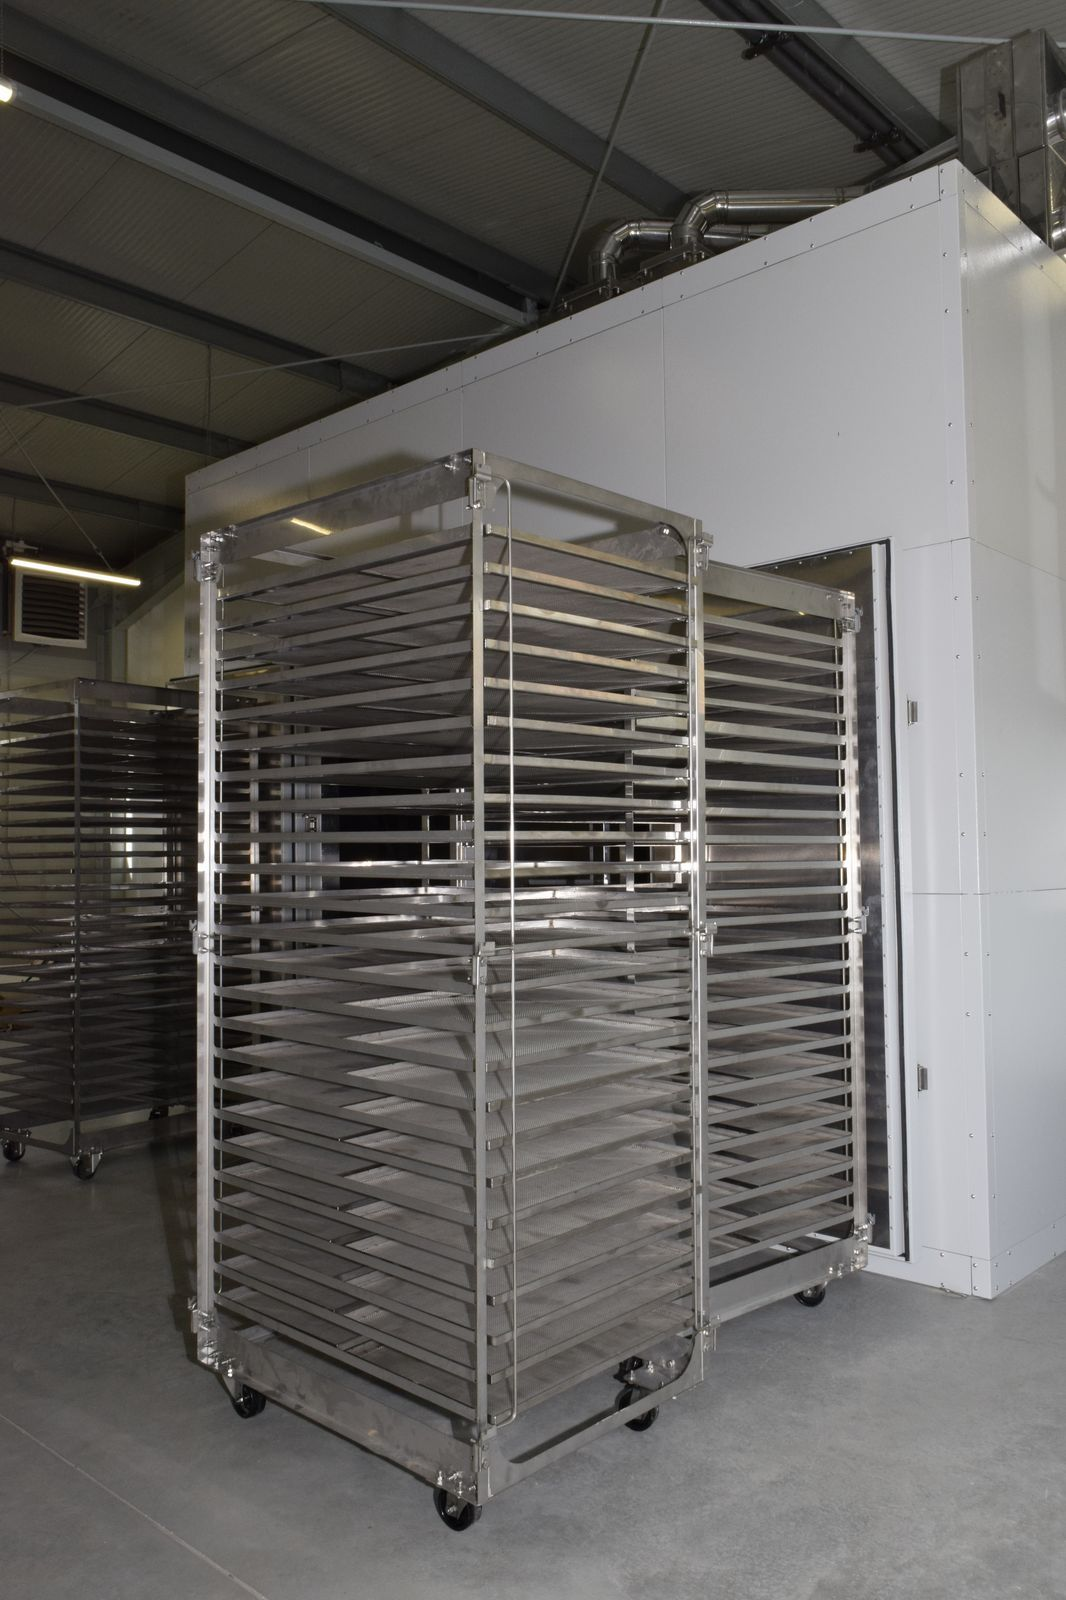 Stainless steel dehydrator carts